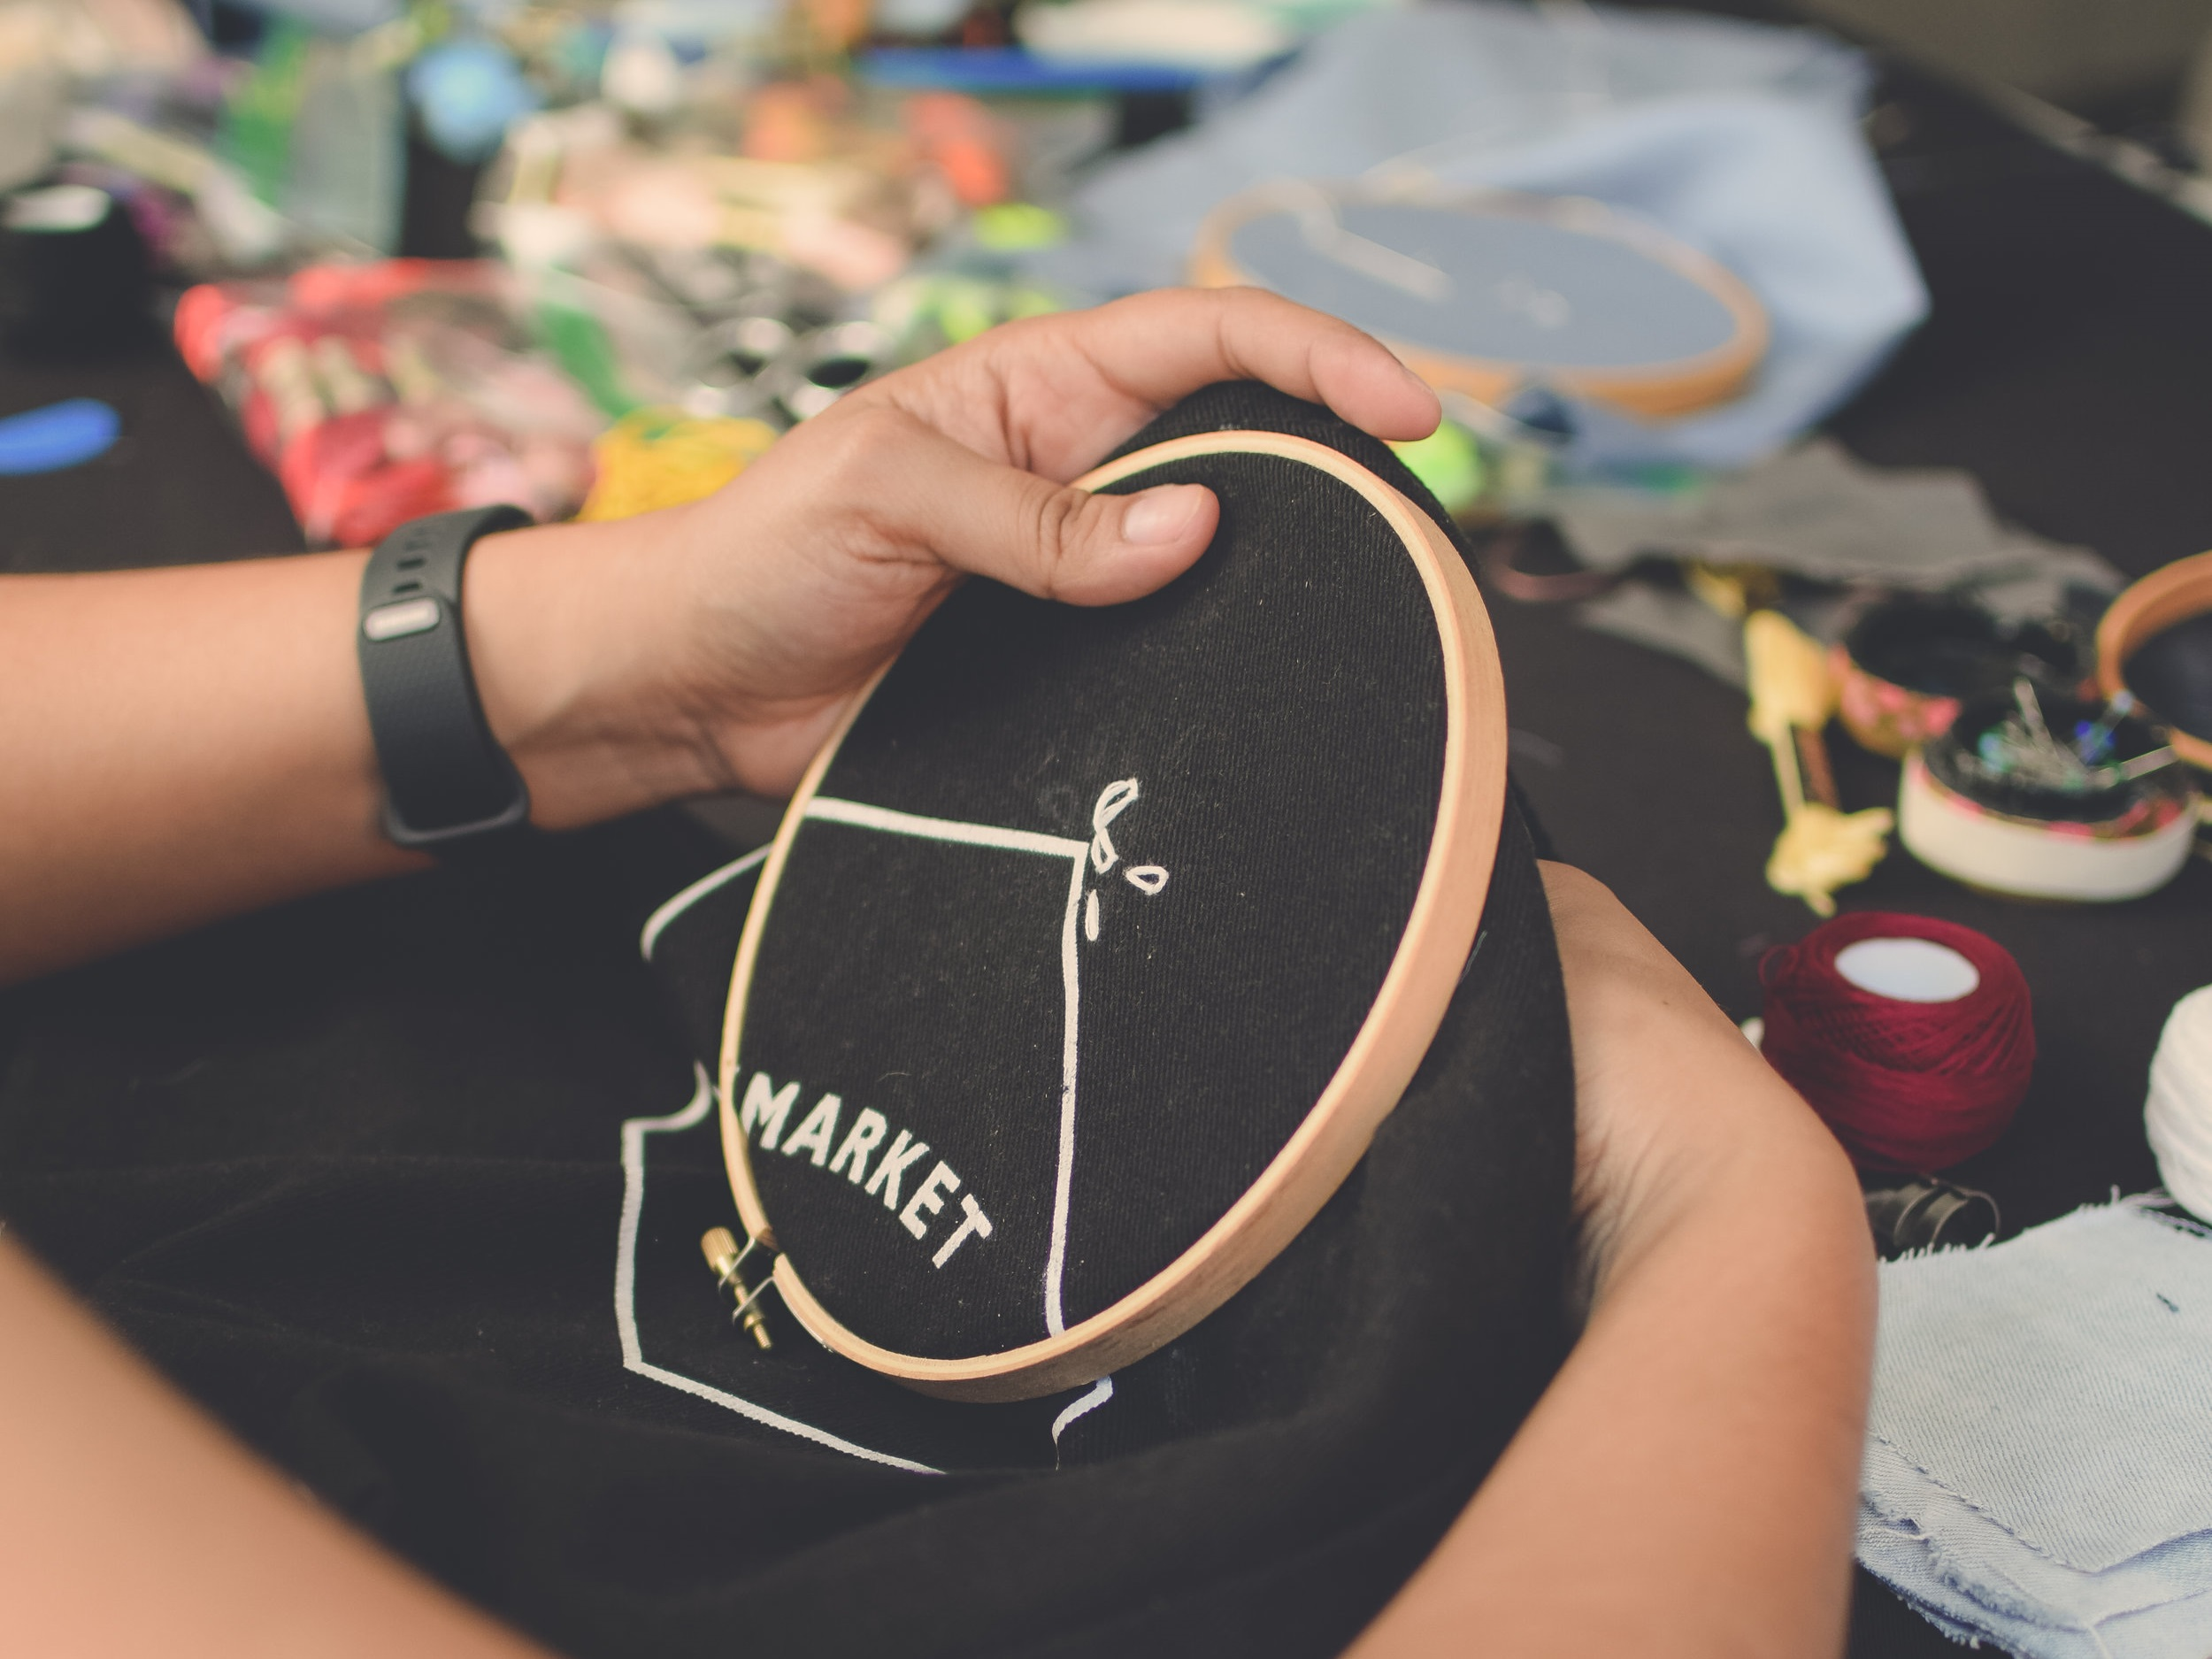 DIY Embroidery Craft Workshop